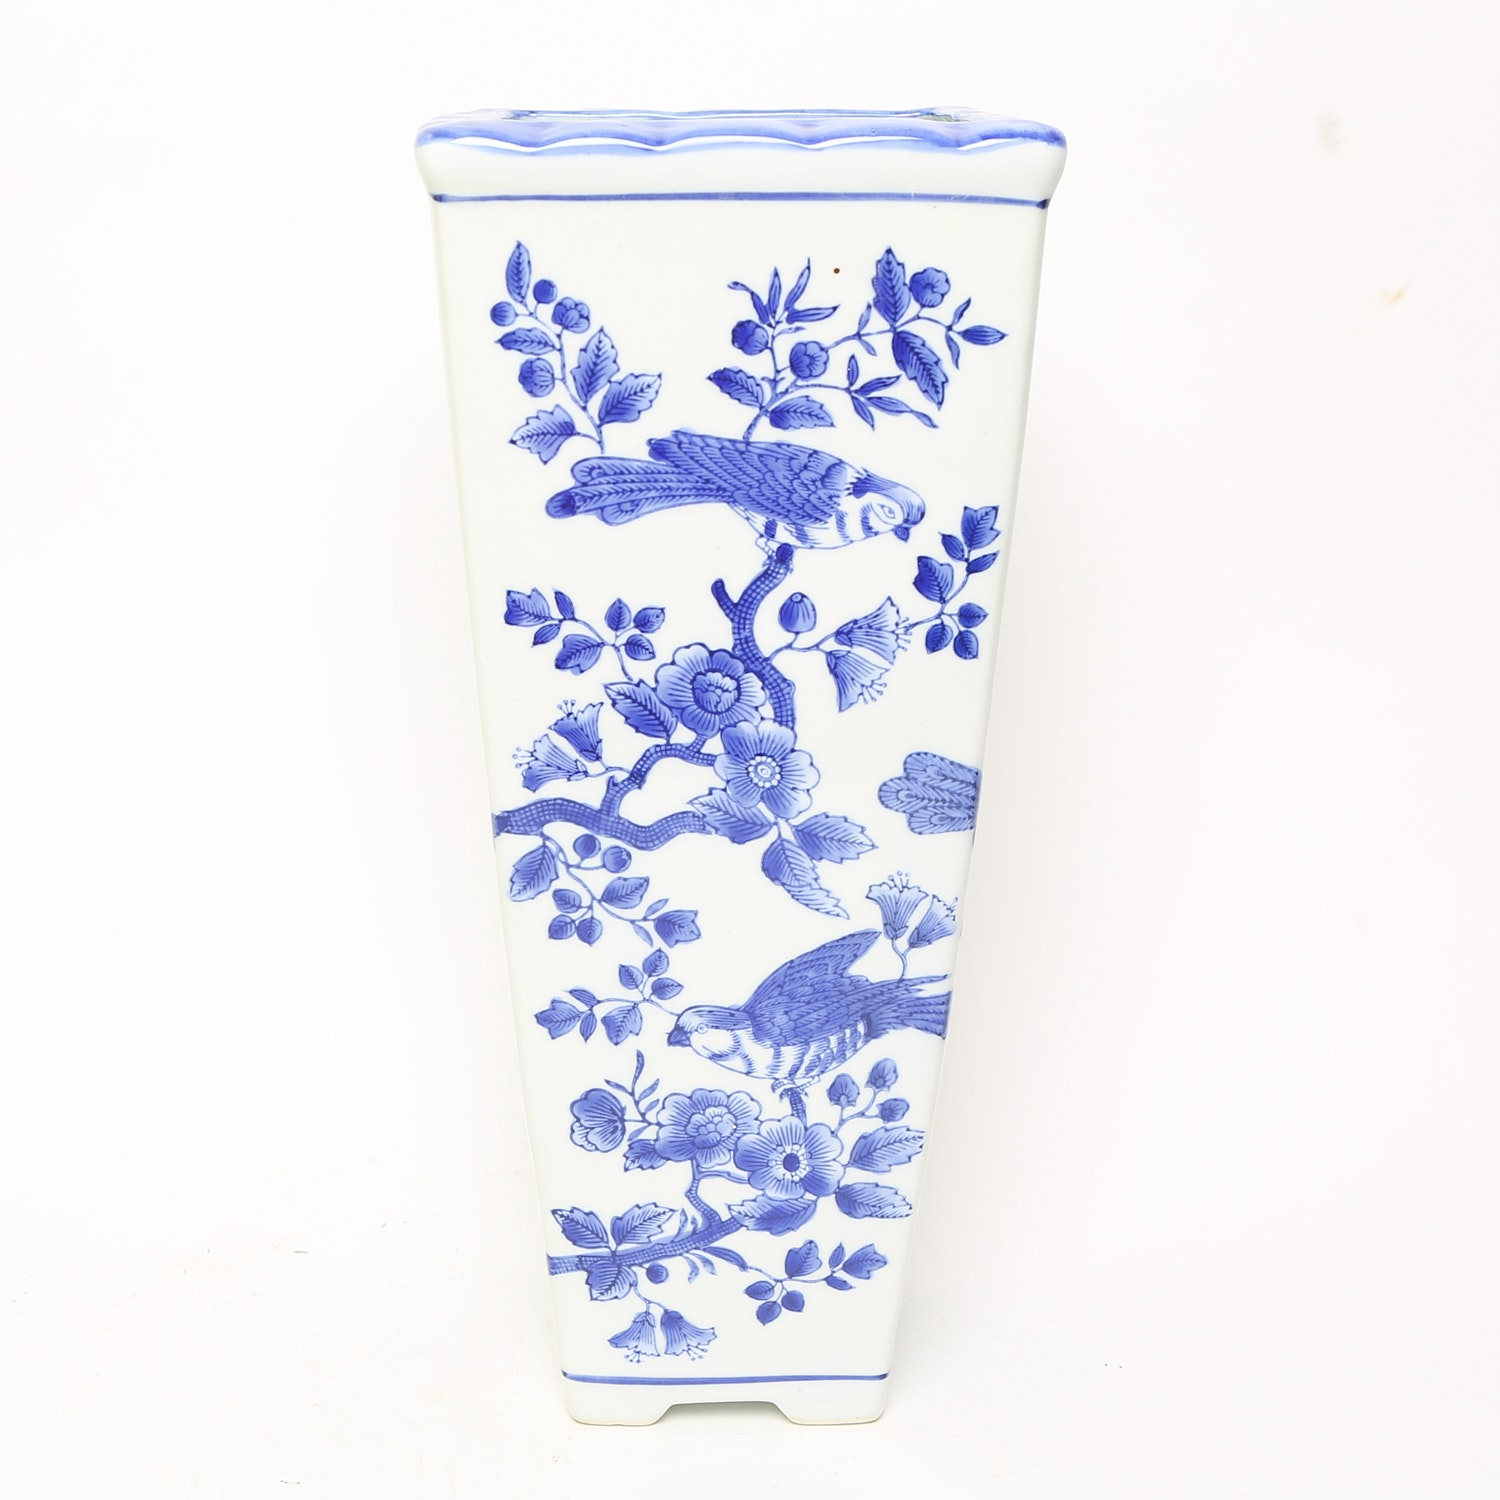 Blue and White Chinese Vase from Formalities by Baum Bros